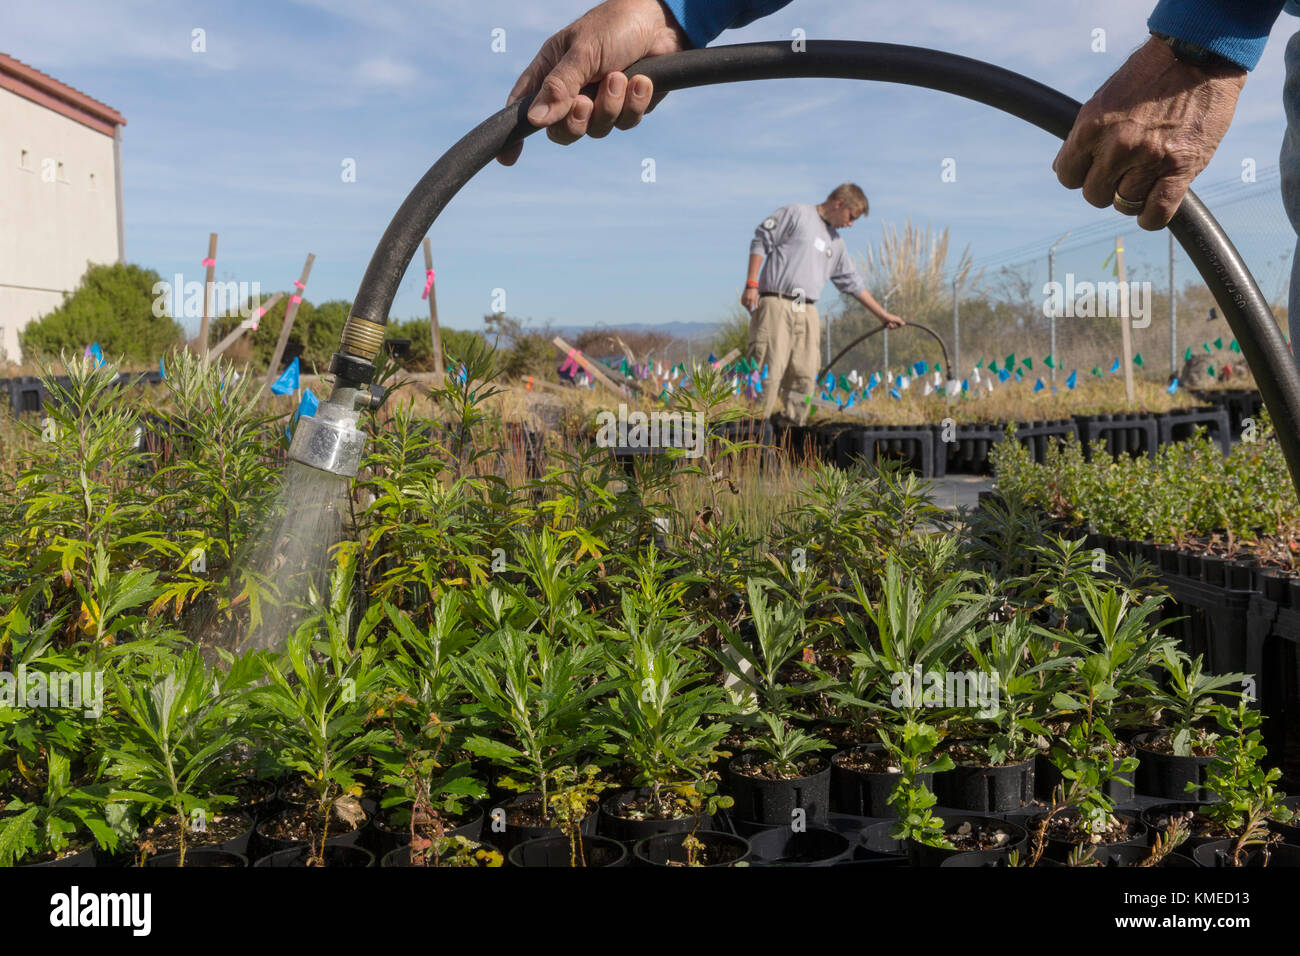 AmeriCorps and community volunteer watering native plants in the nursery at restored Hamilton Field Tidal Marsh,Novato,California,USA - Stock Image